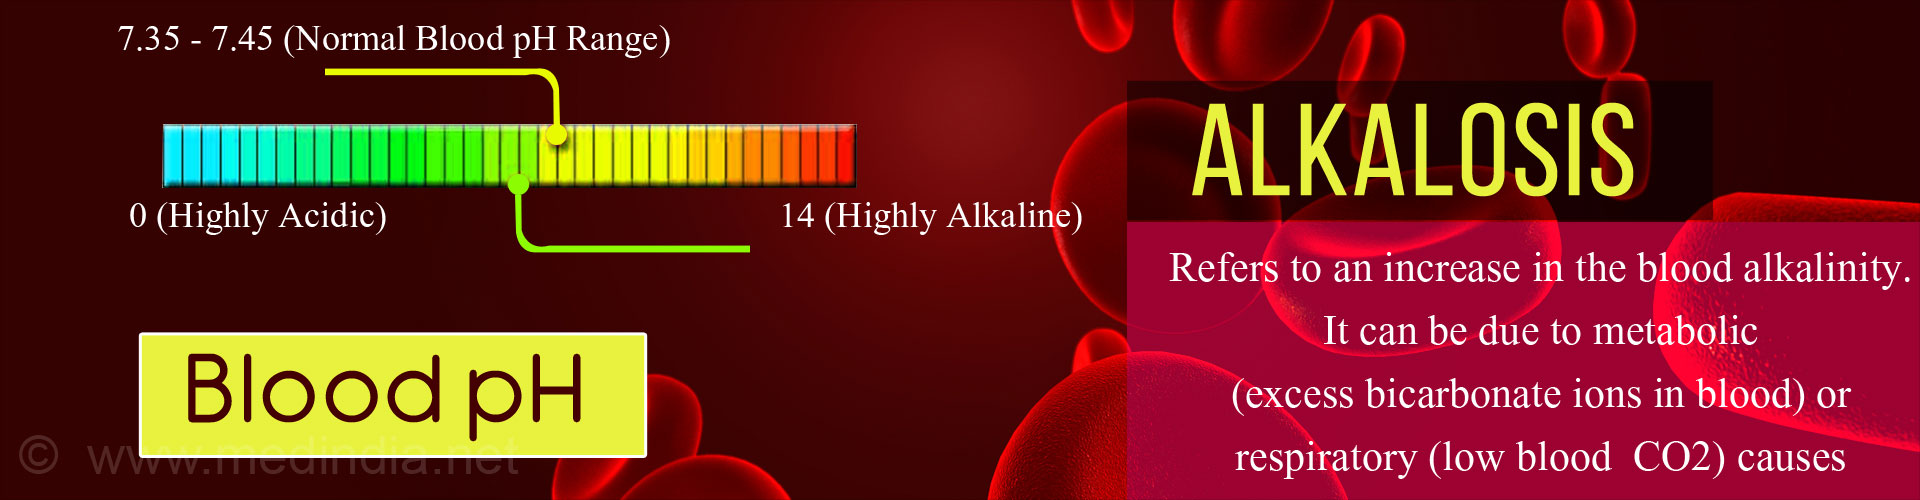 Alkalosis refers to an increase in the blood alkalinity. It can be due to metabolic (excess bicarbonate ions in blood) or respiratory (low blood CO2) causes. 7.35-7.45 (normal blood pH range) 0 (highly acidic) 14 (highly alkaline)